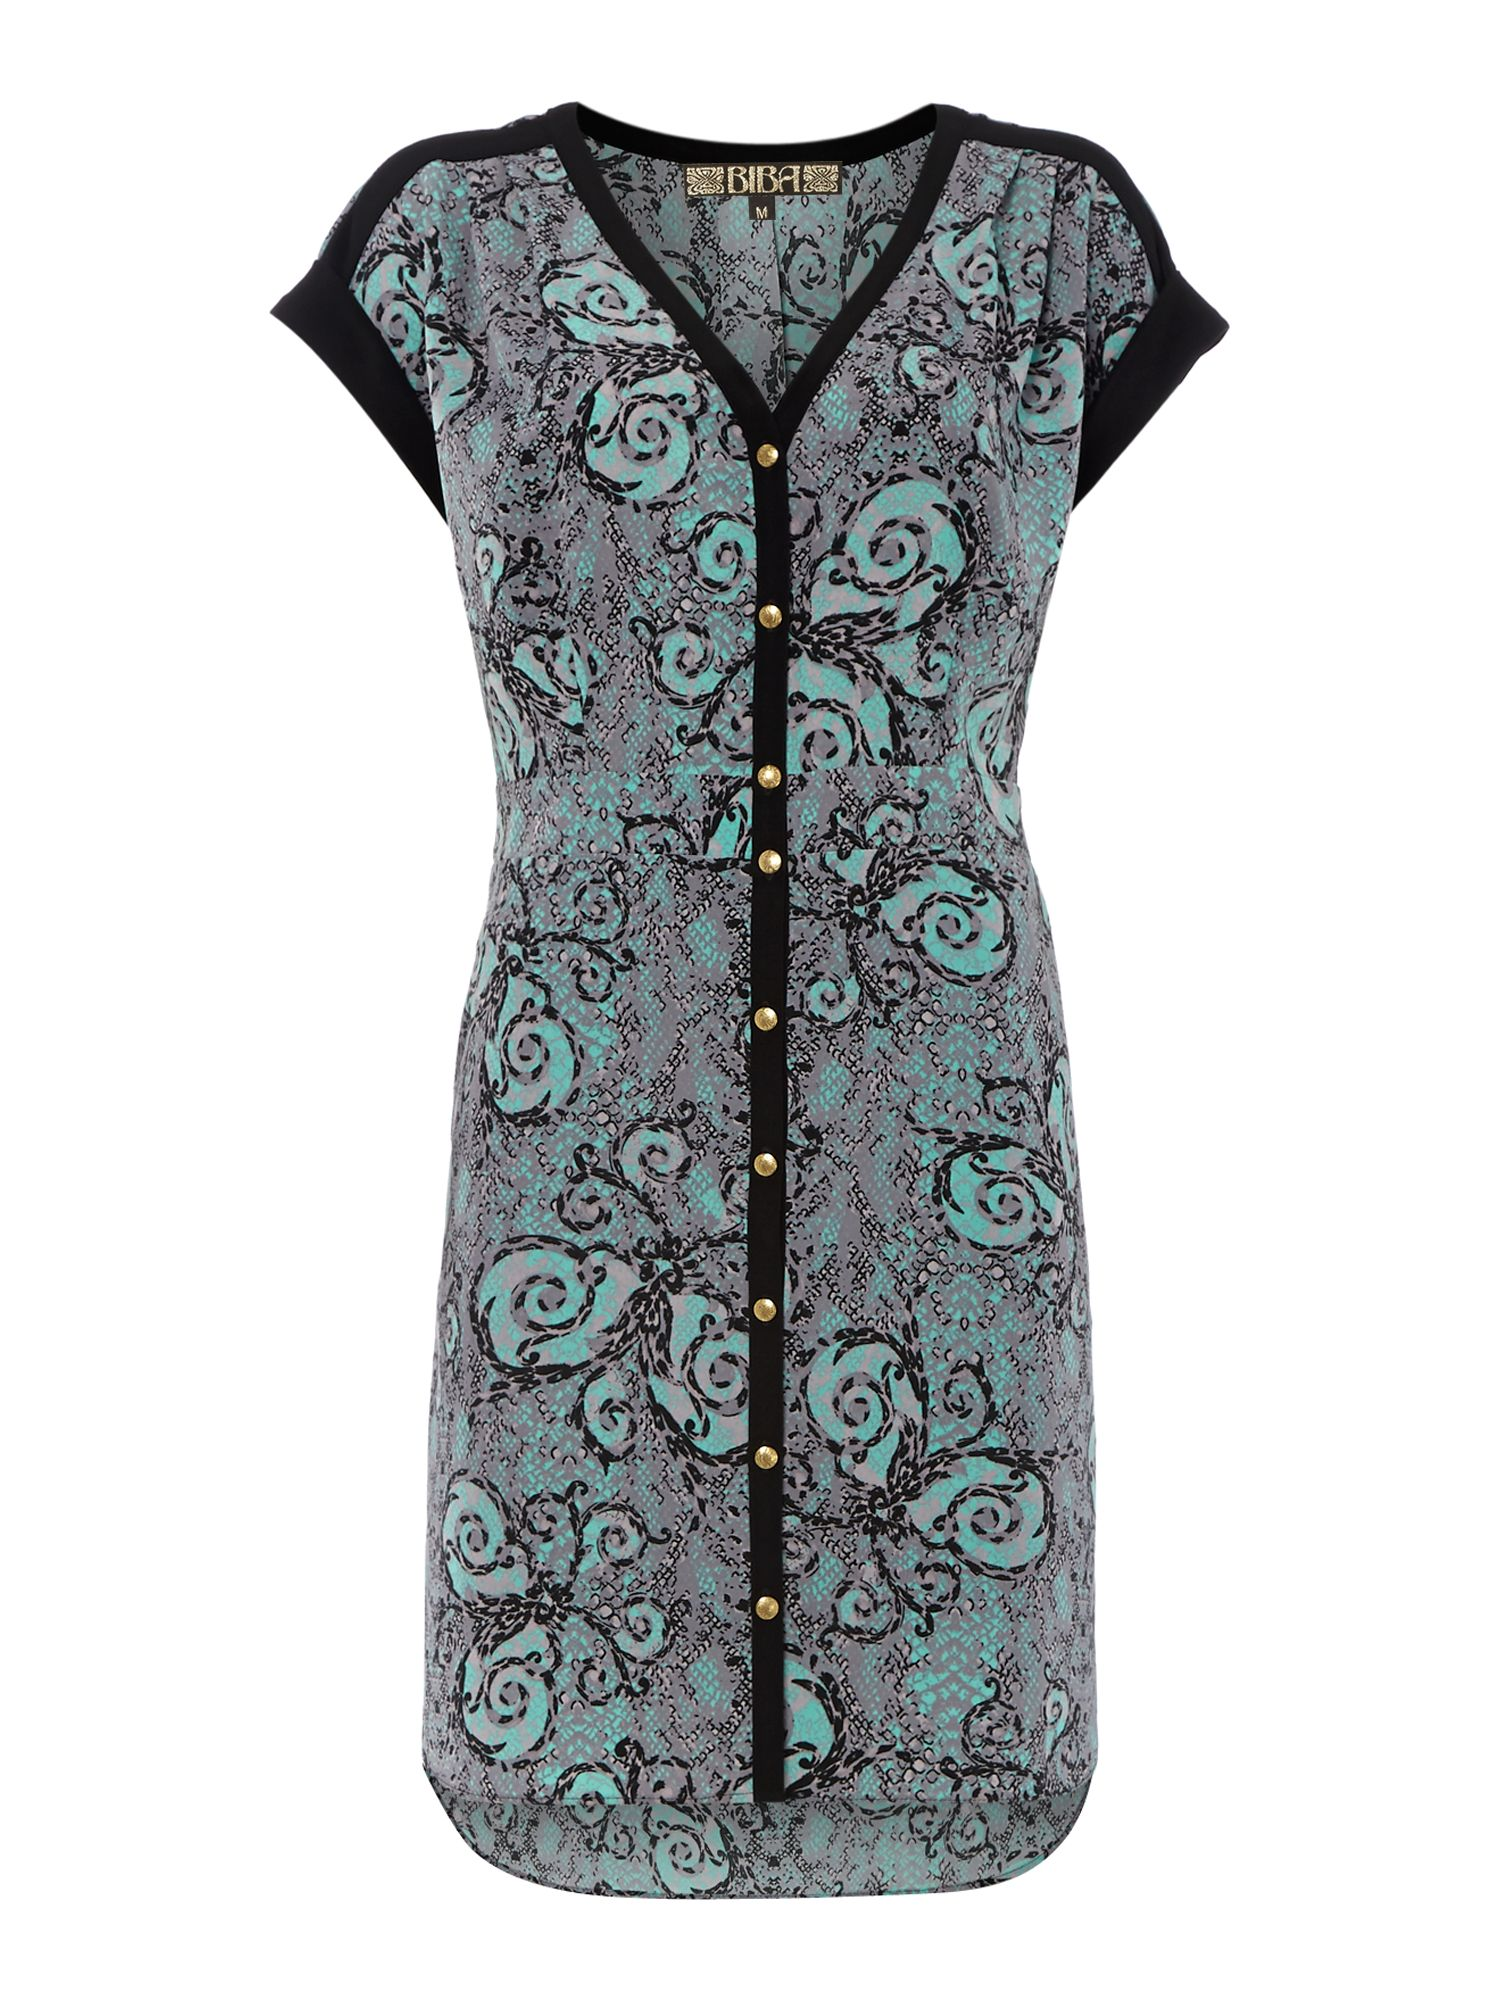 Paisley snake print shirt dress